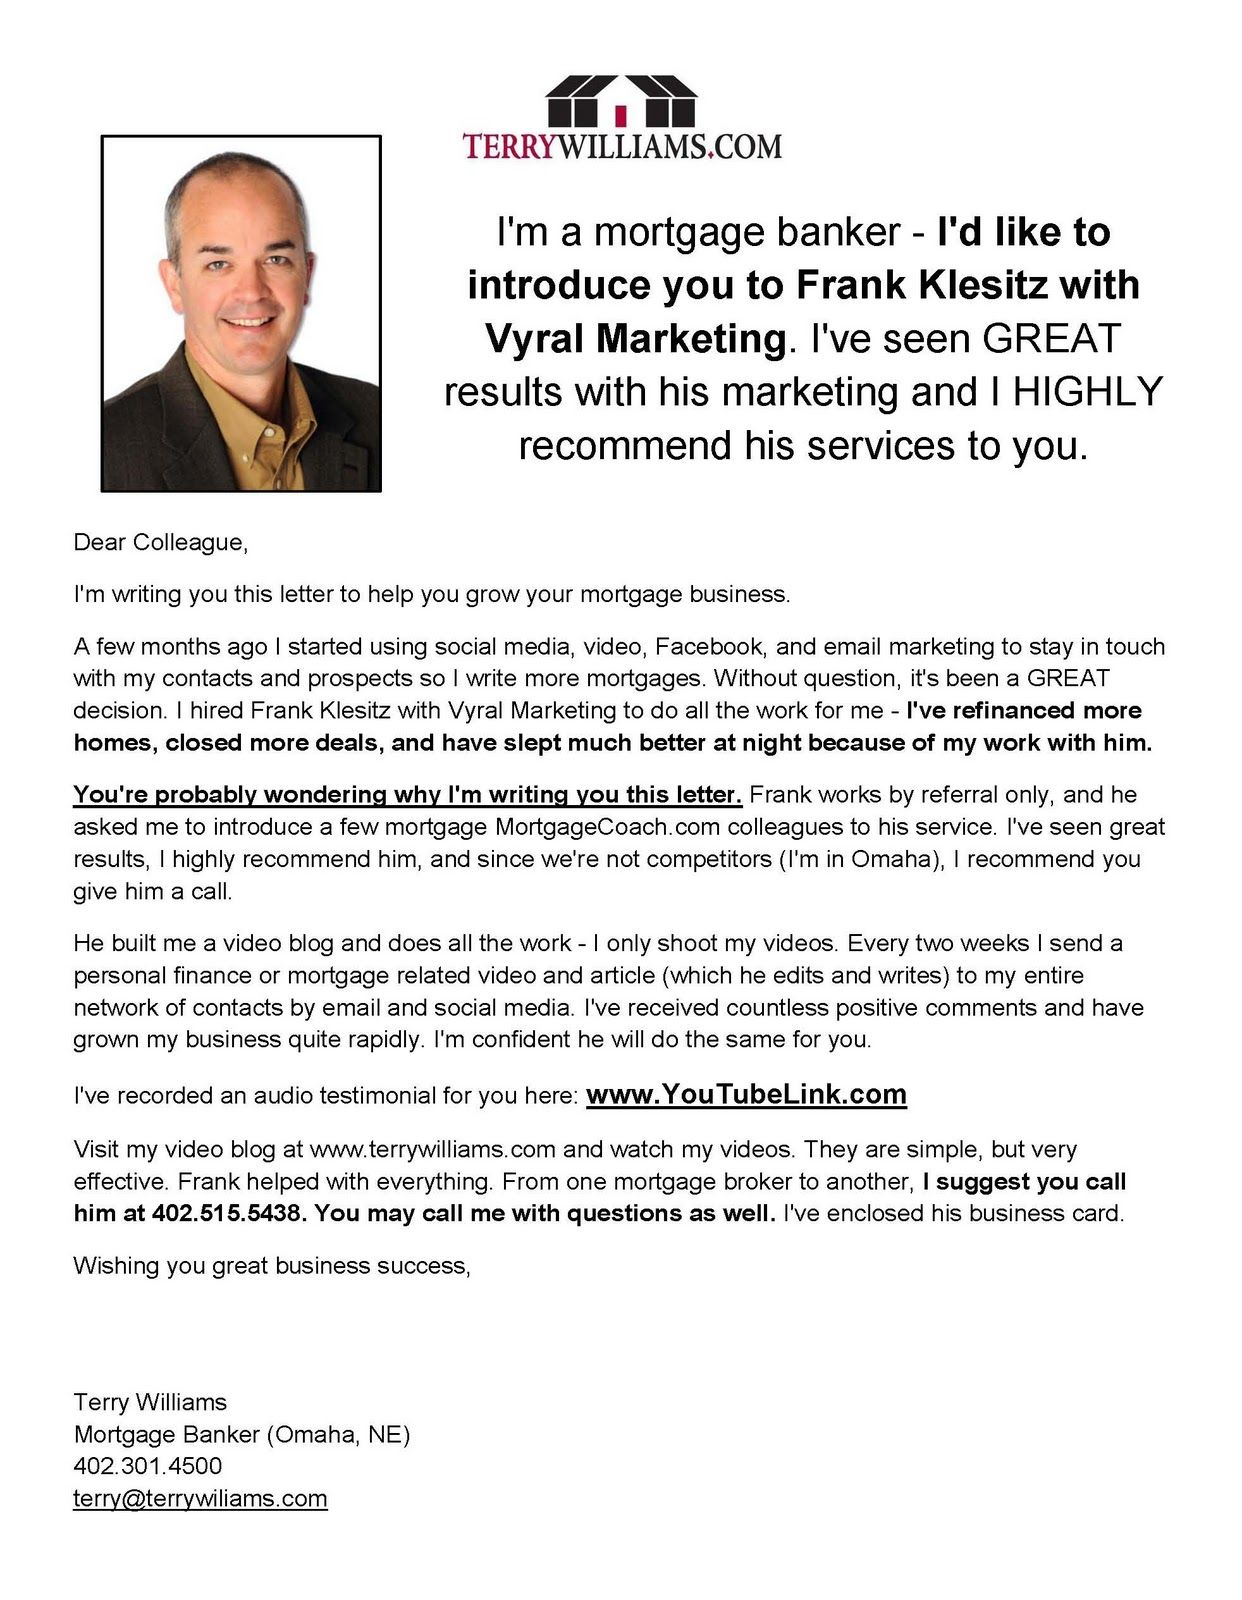 Real Estate Introduction Letter Sample VMore Info About Video Marketing At:  SemanticMastery.com  New Product Introduction Letter Template